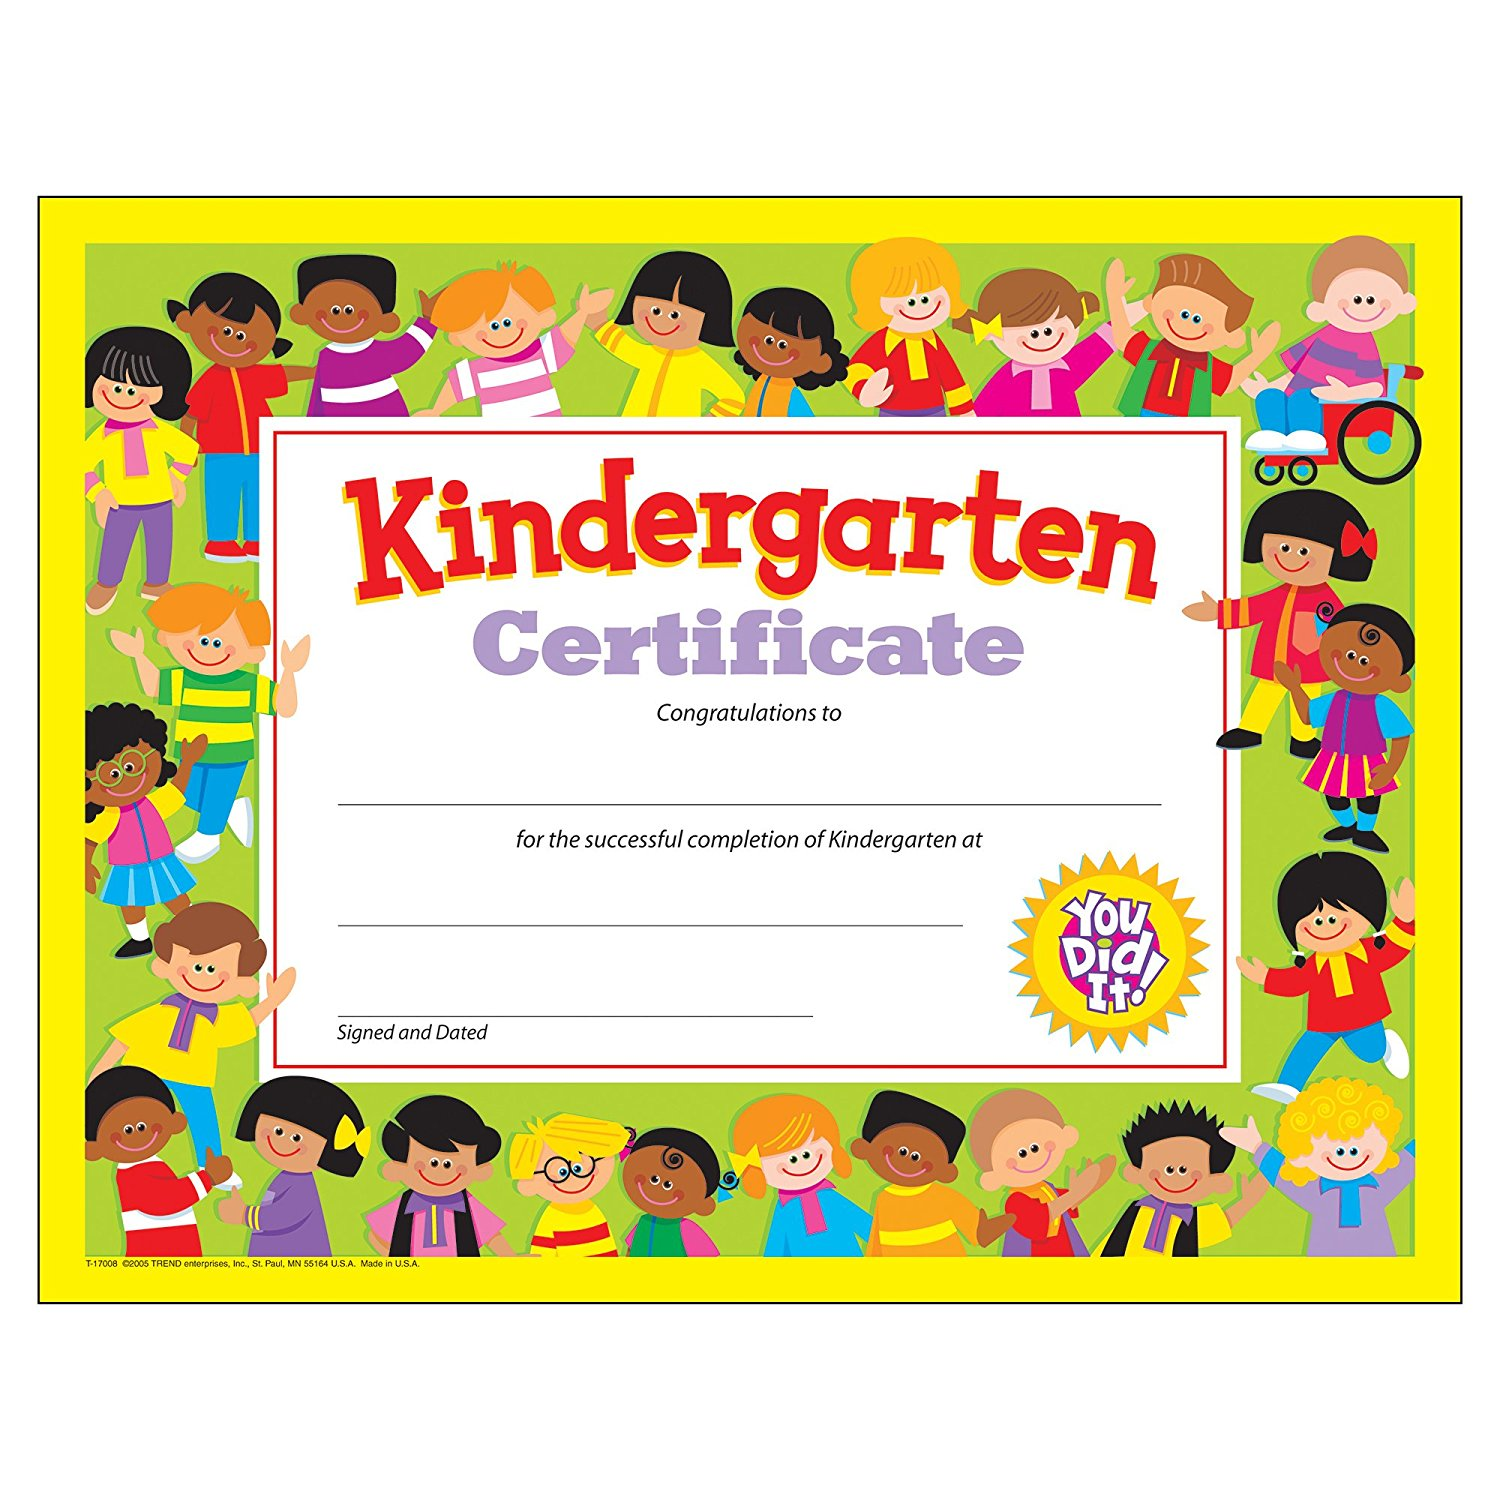 Kindergarten Awards Certificates: Certificates Templates Free